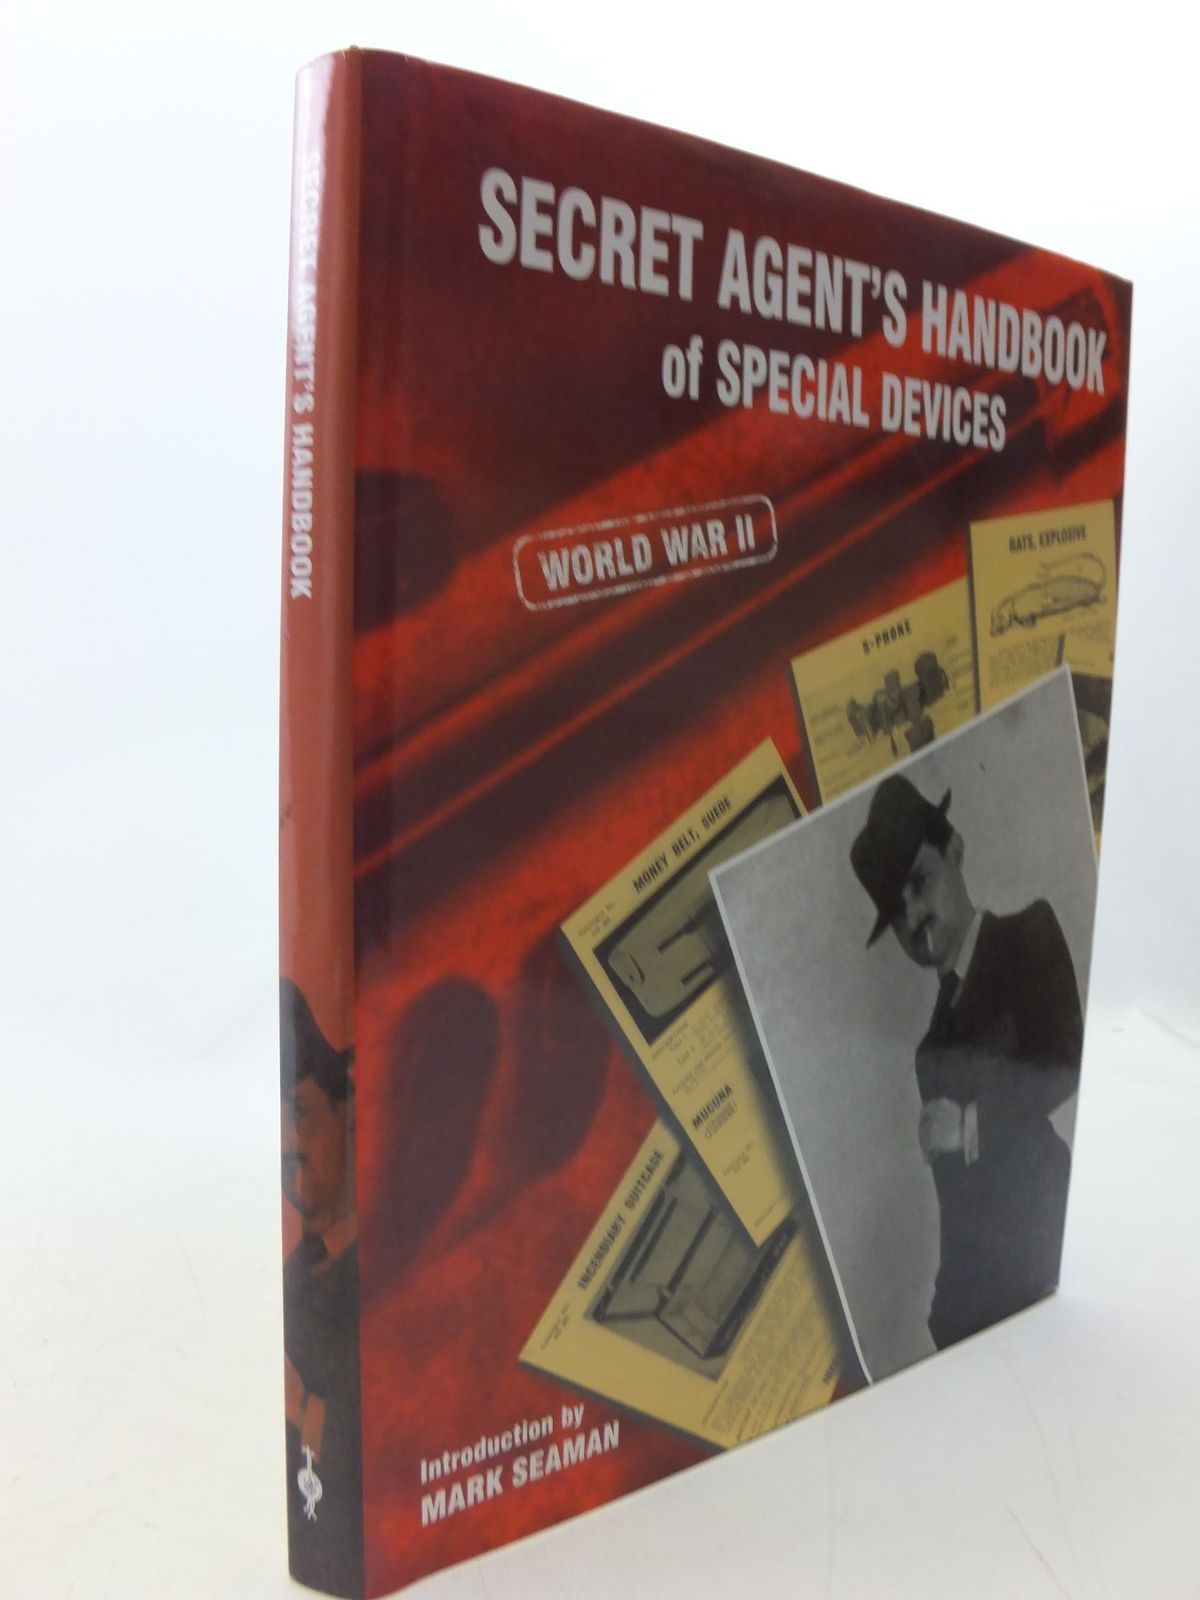 Photo of SECRET AGENT'S HANDBOOK OF SPECIAL DEVICES WORLD WAR II written by Seaman, Mark published by Public Record Office (STOCK CODE: 1710688)  for sale by Stella & Rose's Books